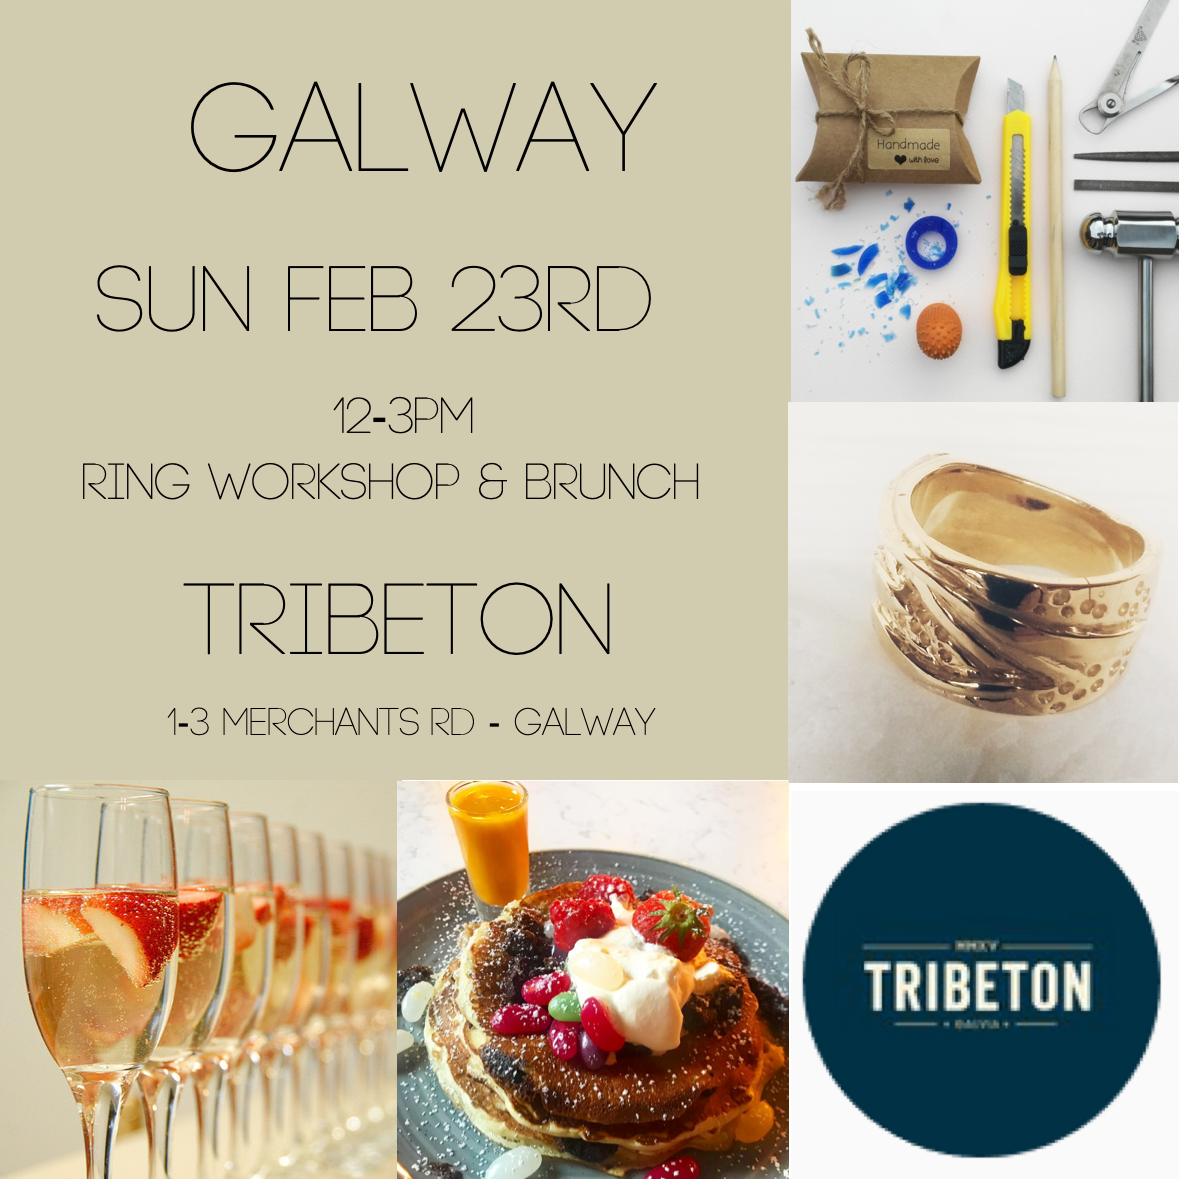 Galway 23rd Feb 2020